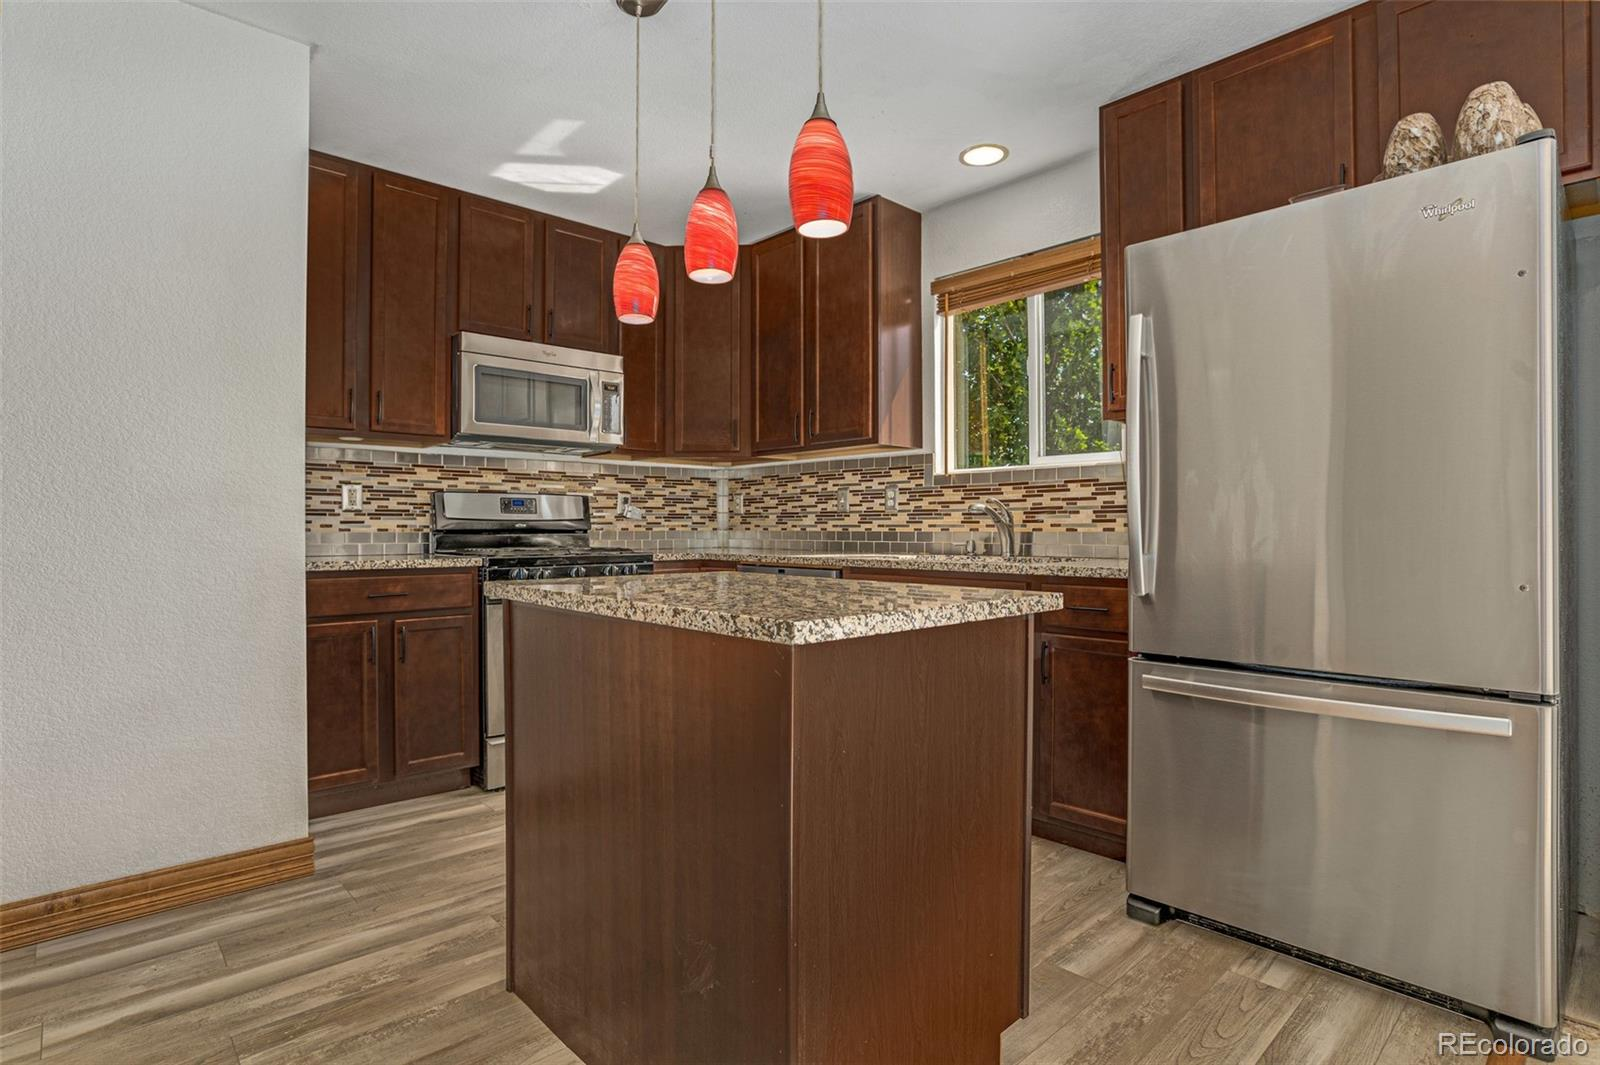 MLS# 6387968 - 12 - 7580 Middle Bay Way, Fountain, CO 80817